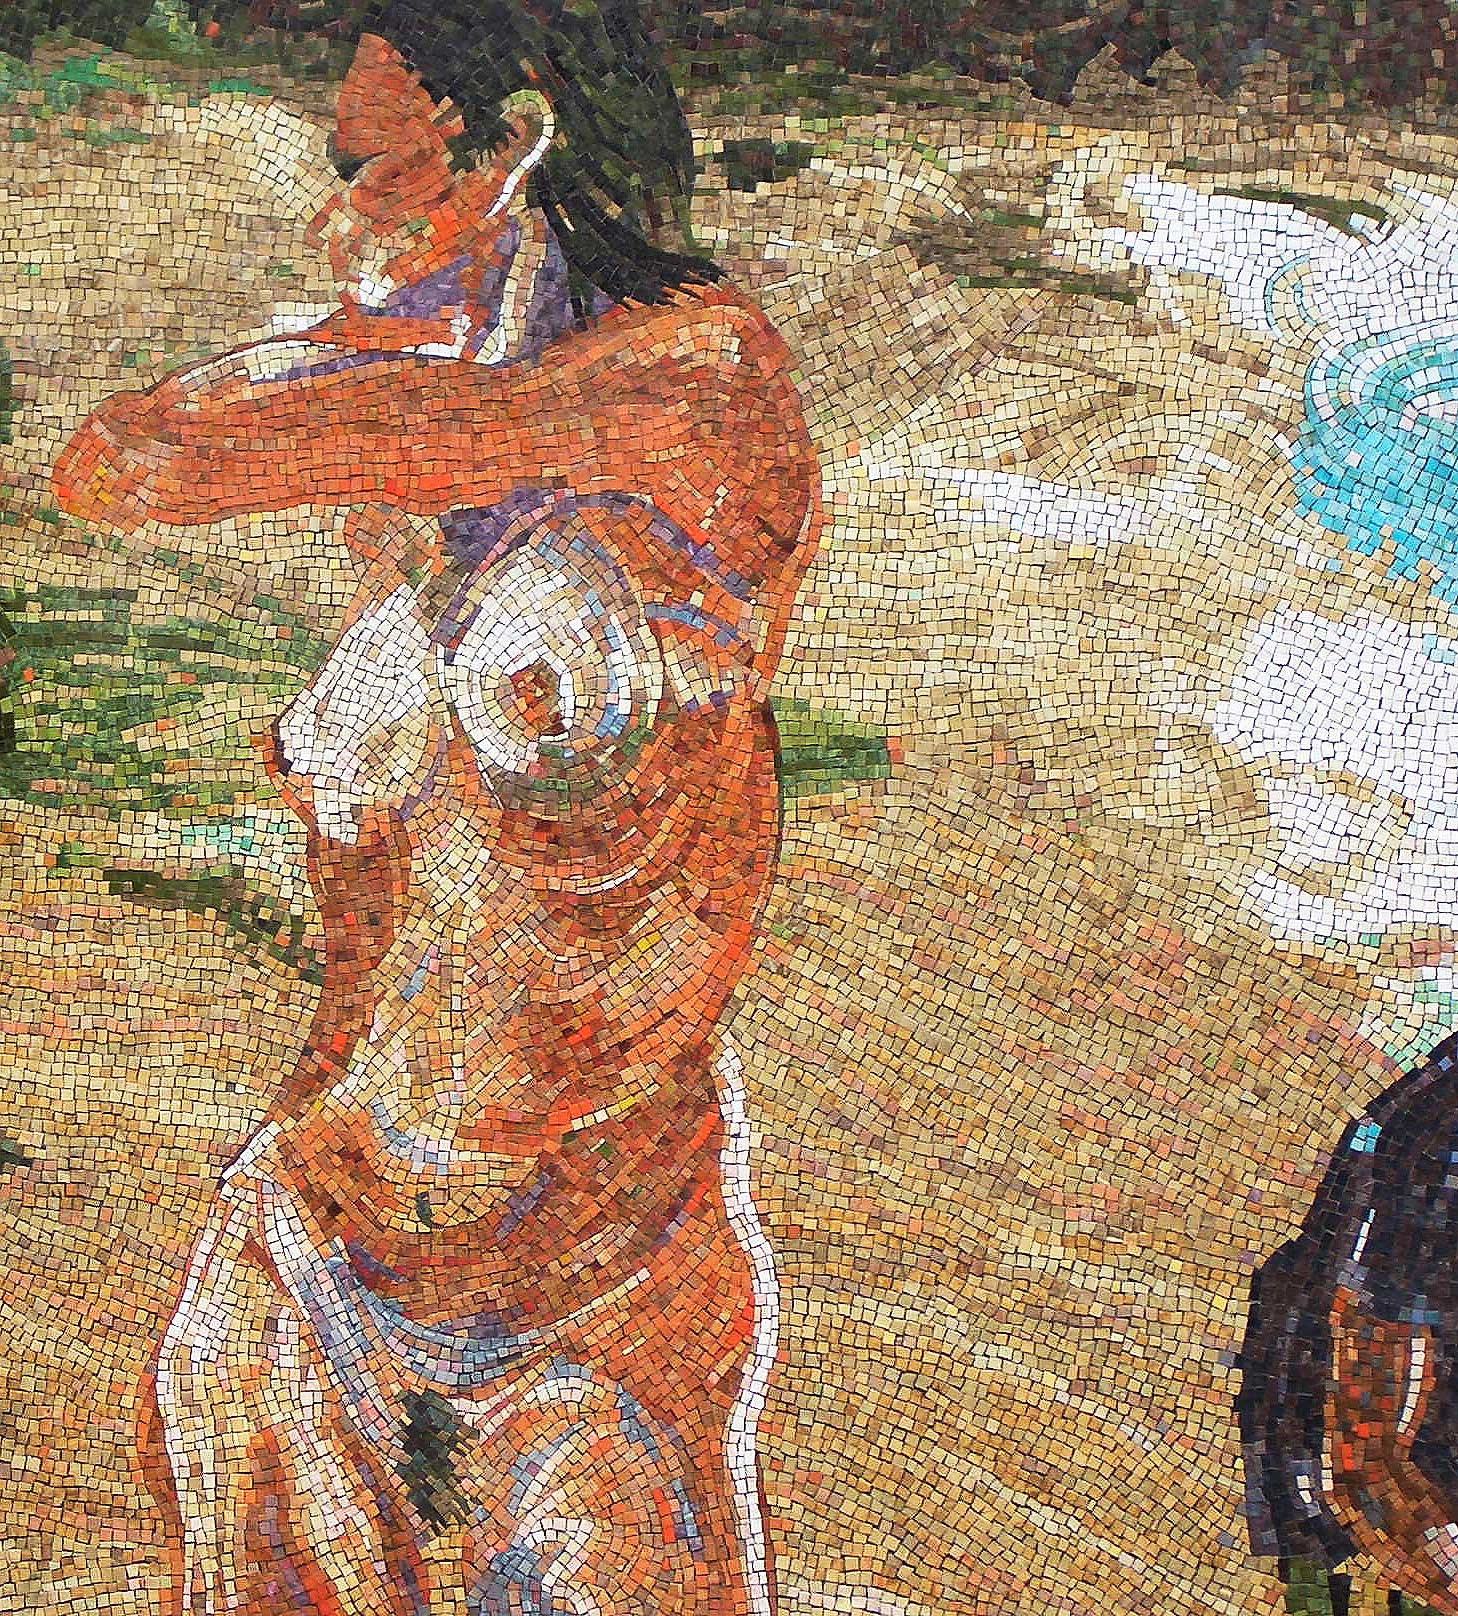 detail from Untitled (Girls at Beach with Man in Green Hat), glass tile mosaic in private residence, 2006